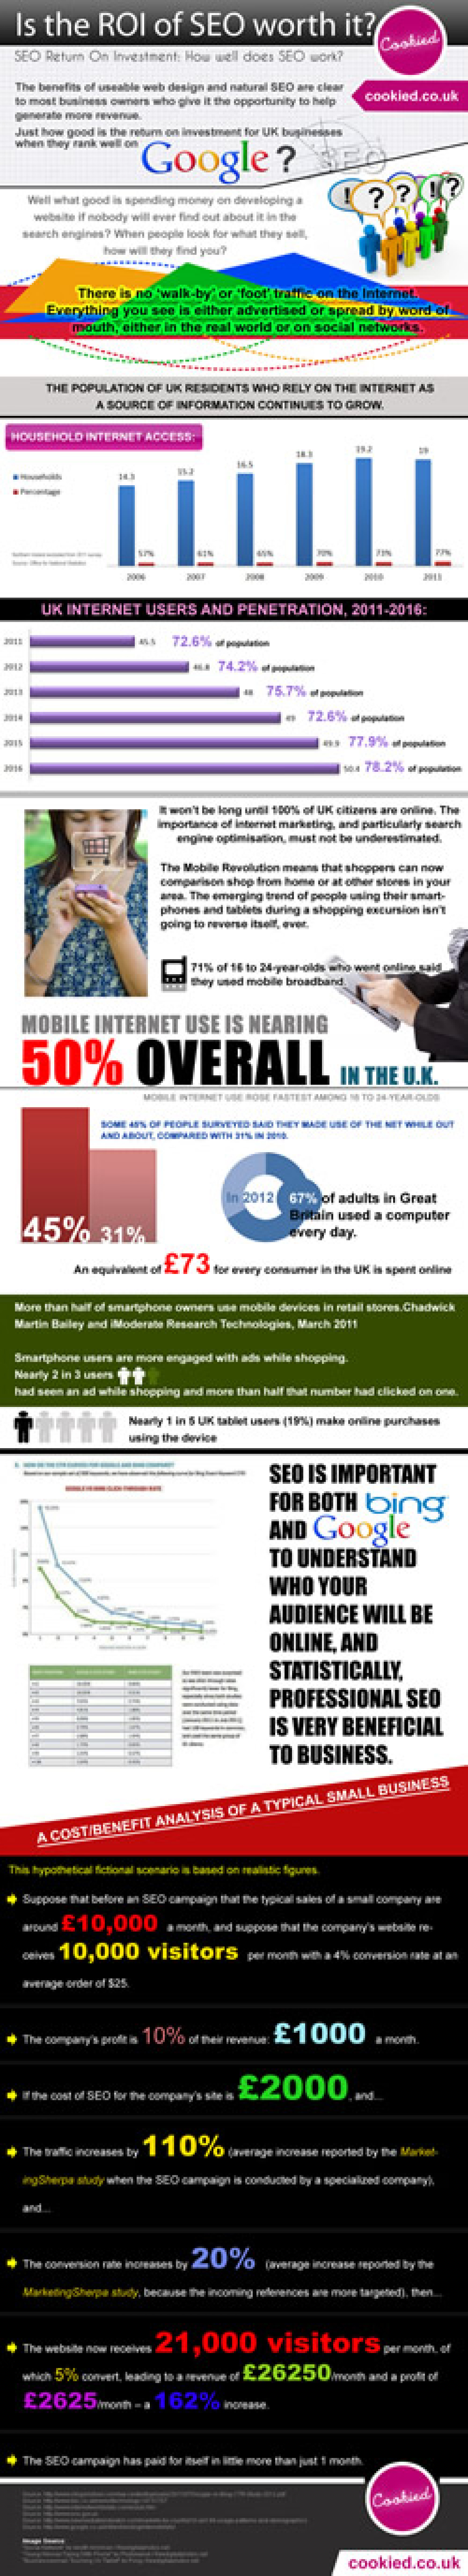 Is the ROI of SEO worth it? Infographic